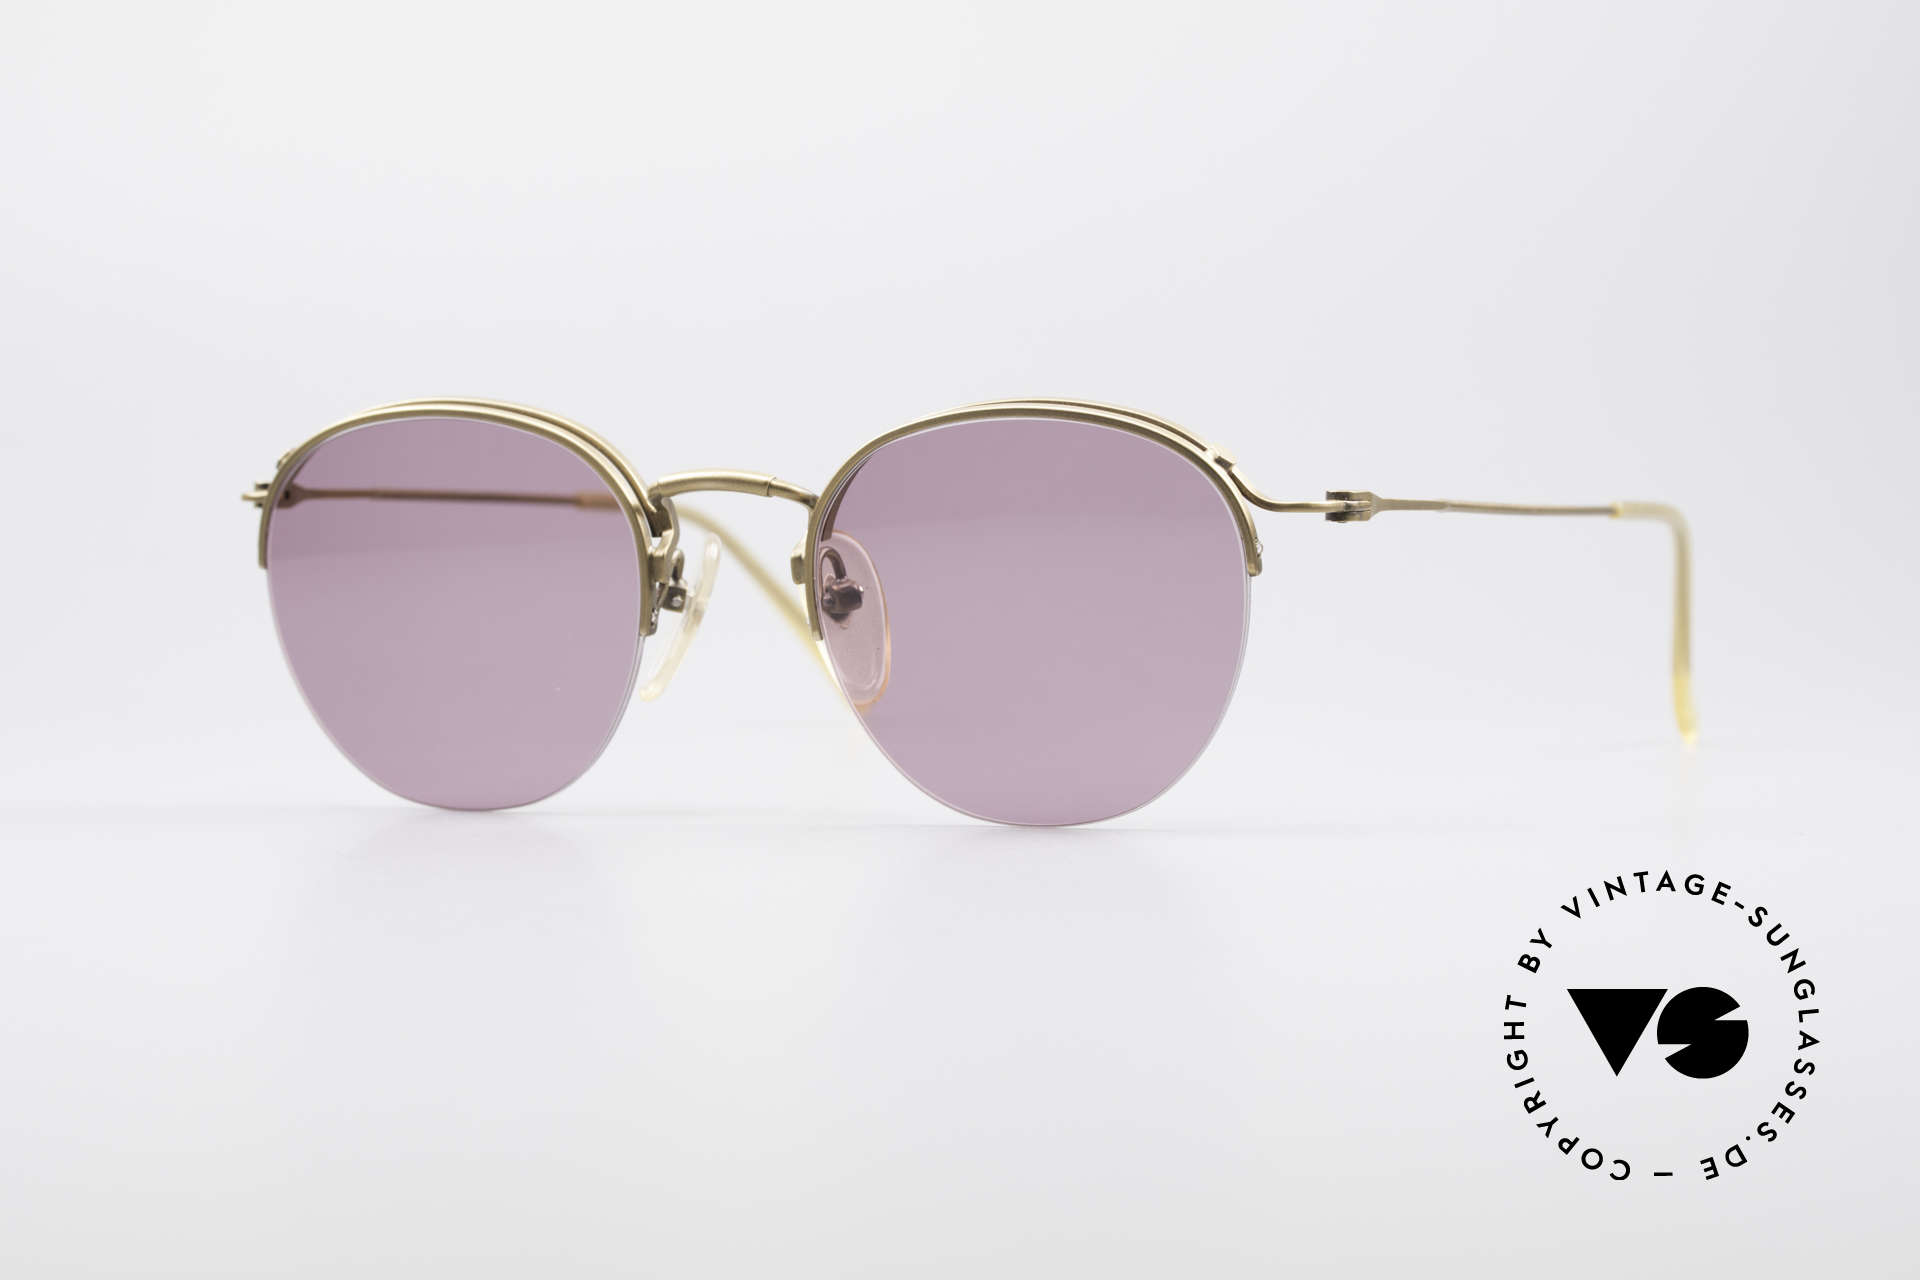 Jean Paul Gaultier 55-1172 Half Rimless Sunglasses, noble Jean Paul GAULTIER 90's designer shades, Made for Men and Women